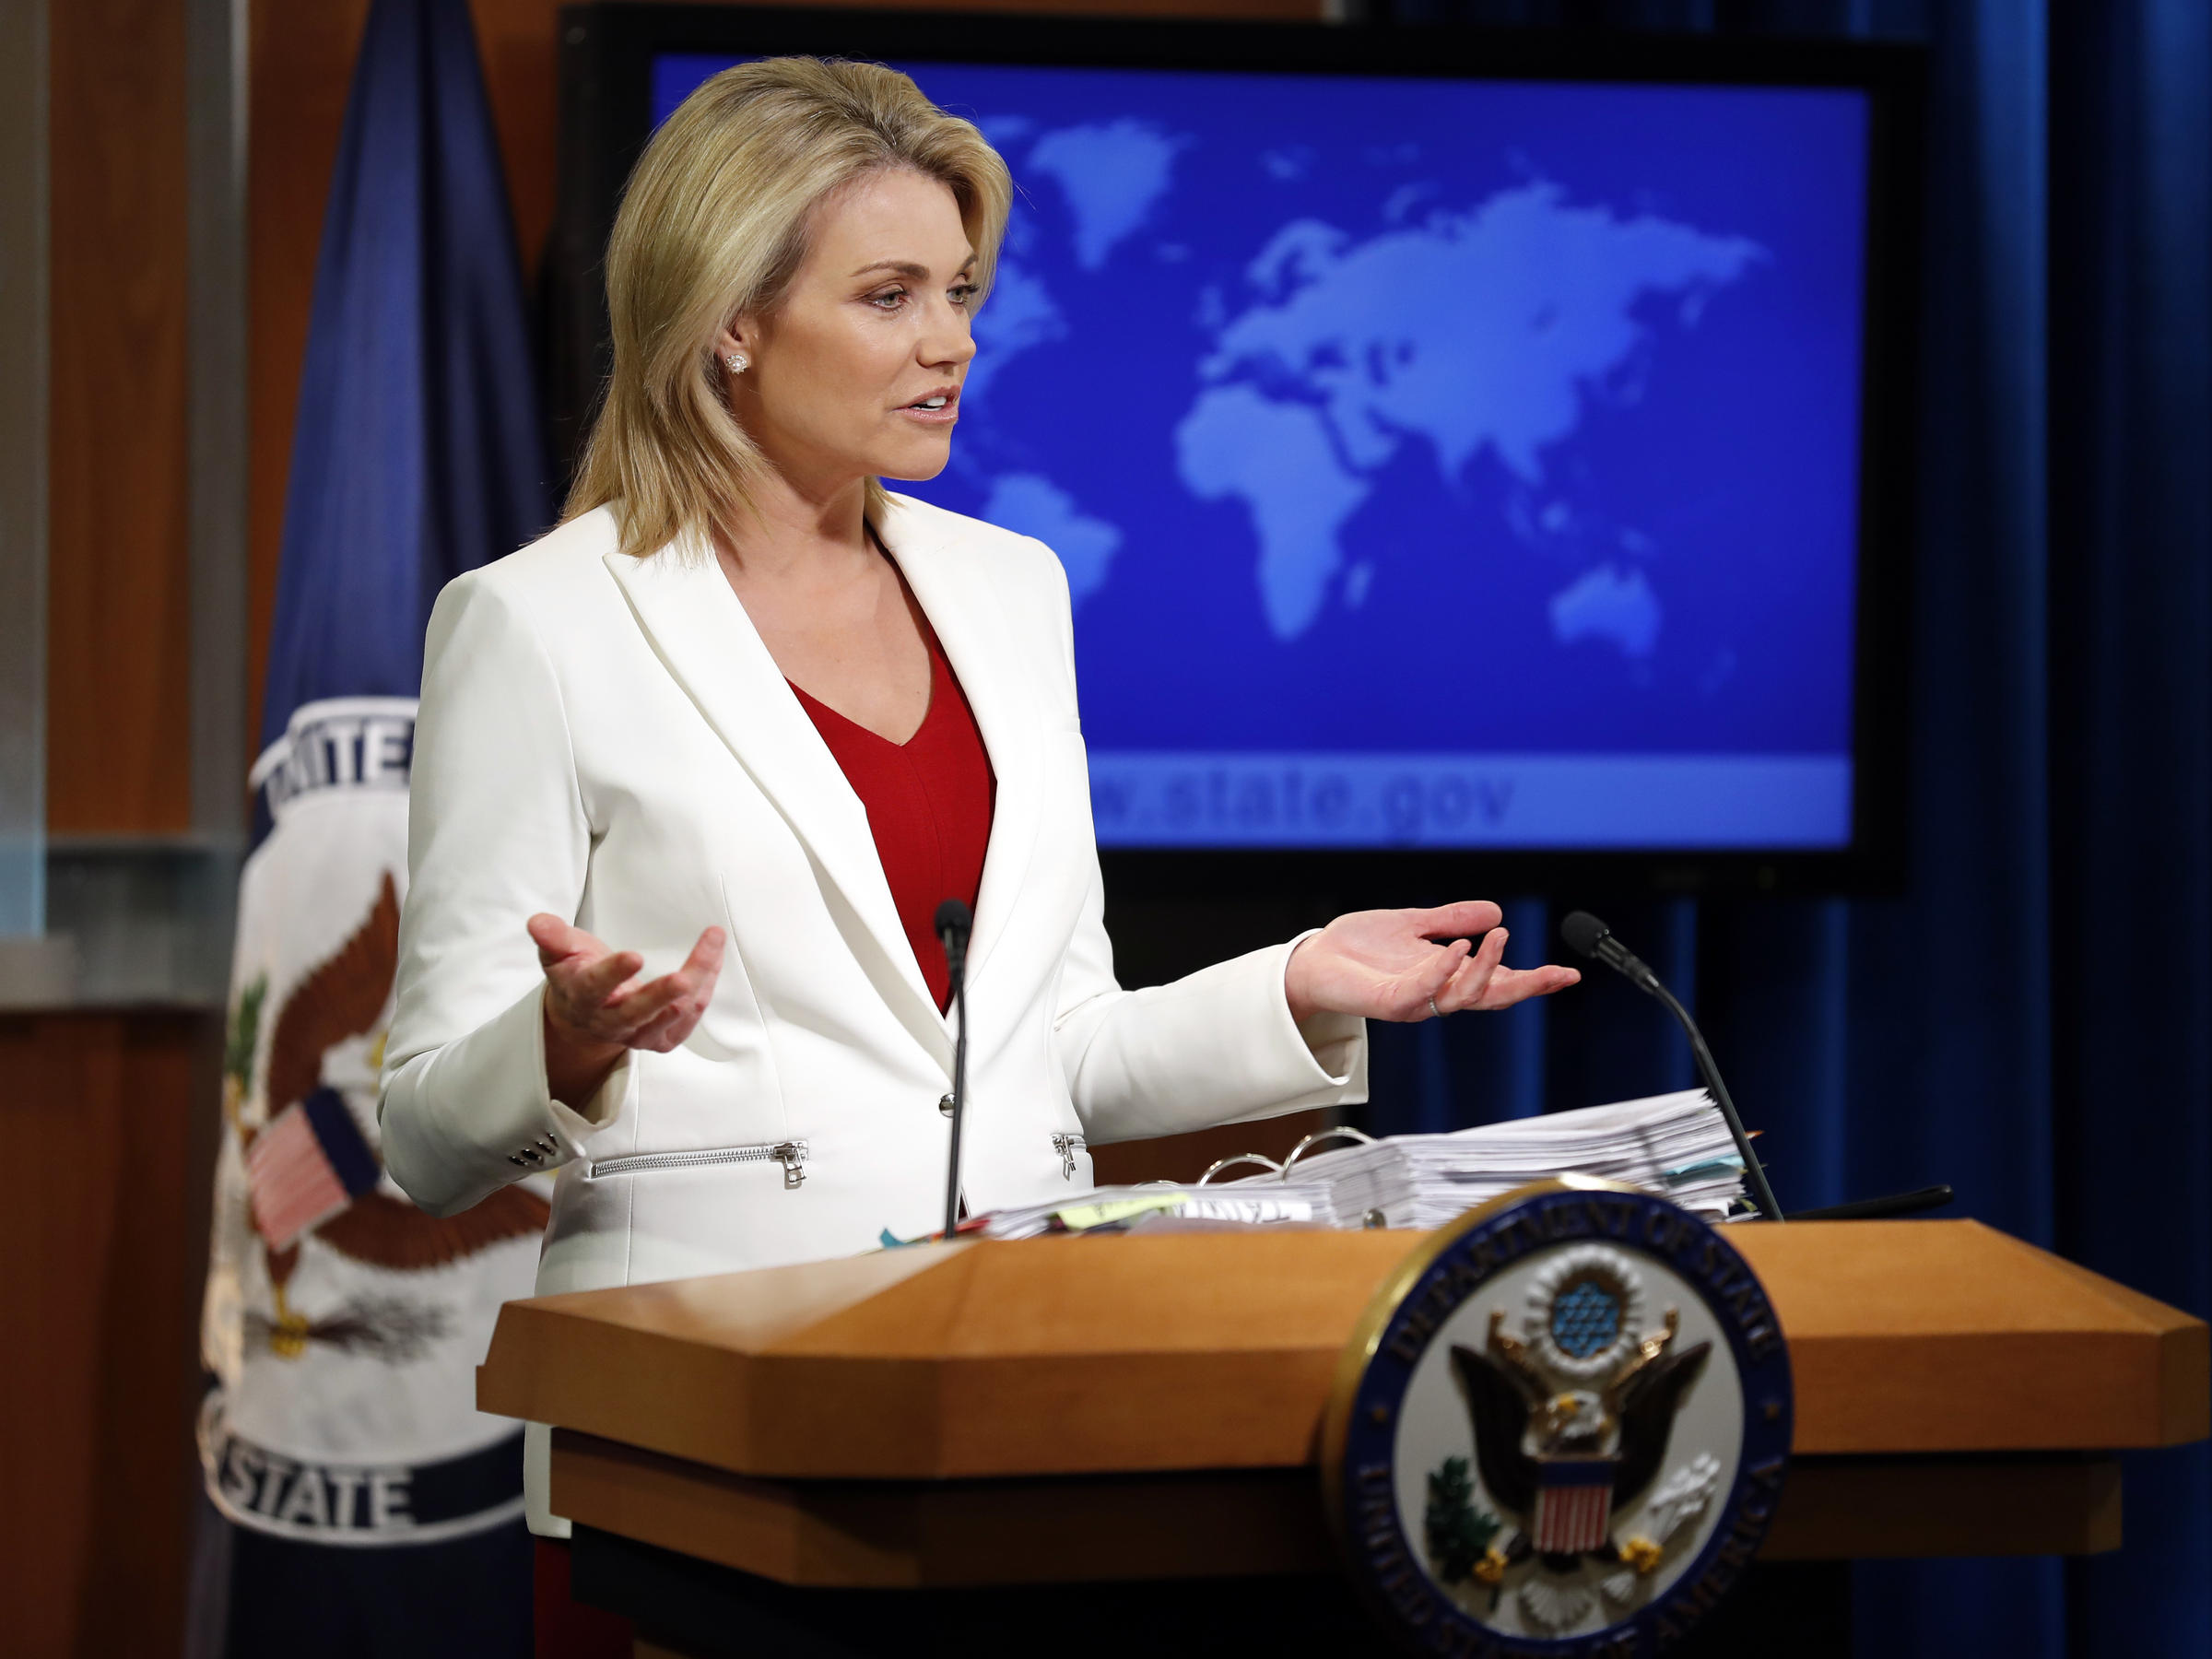 Blonde 'n' Hard-Working: What Propelled Ex-Fox Nauert to UN Role?